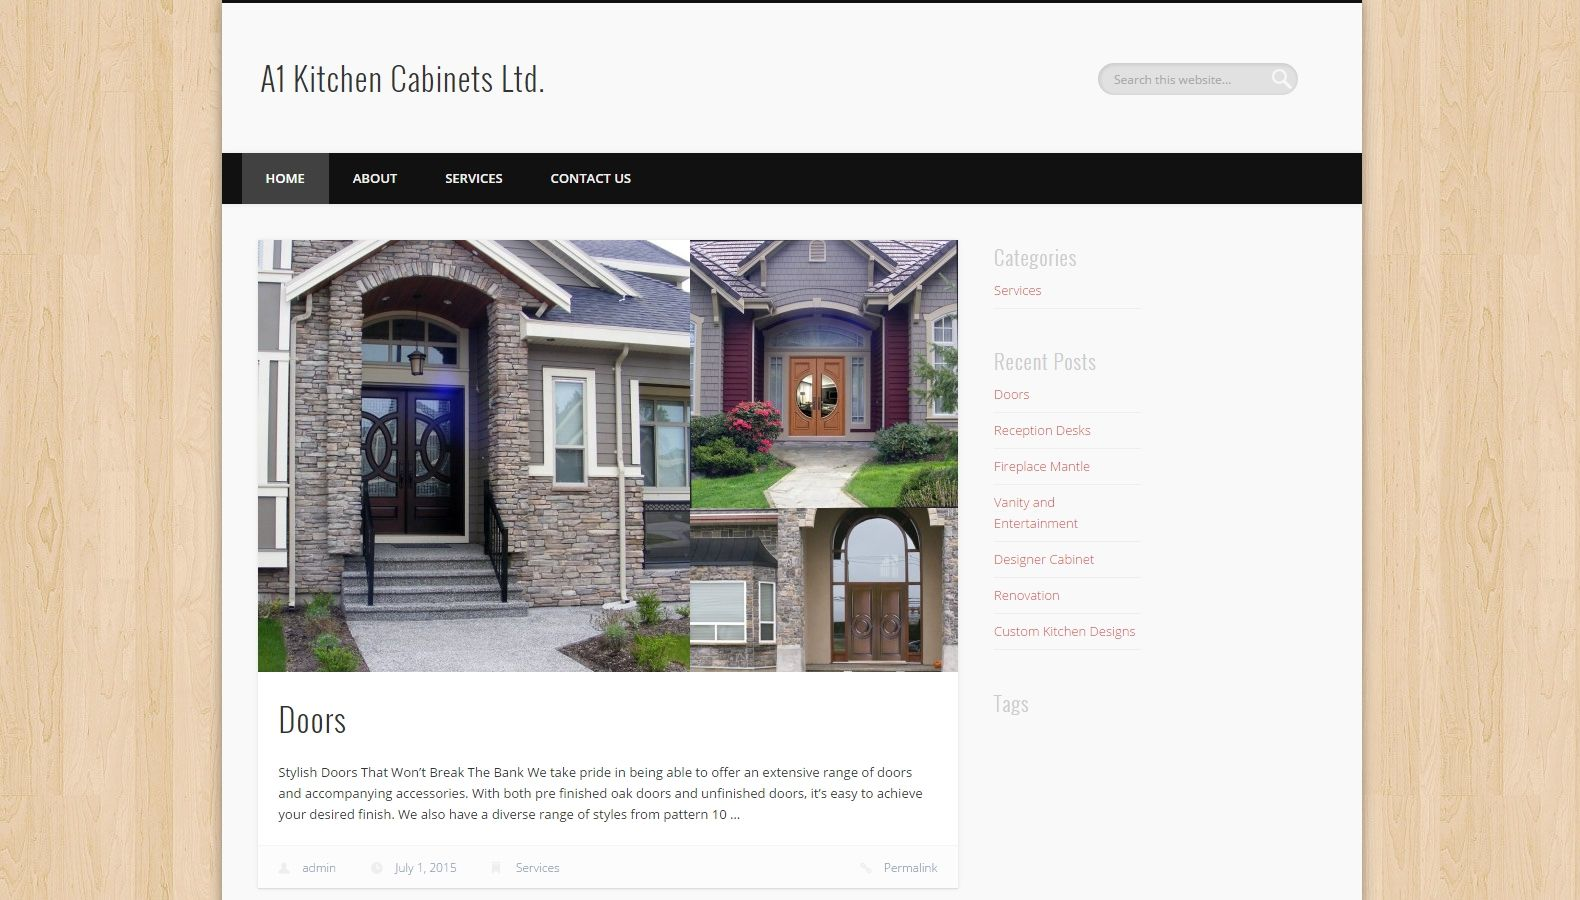 a1 kitchen cabinets ltd seo web design services